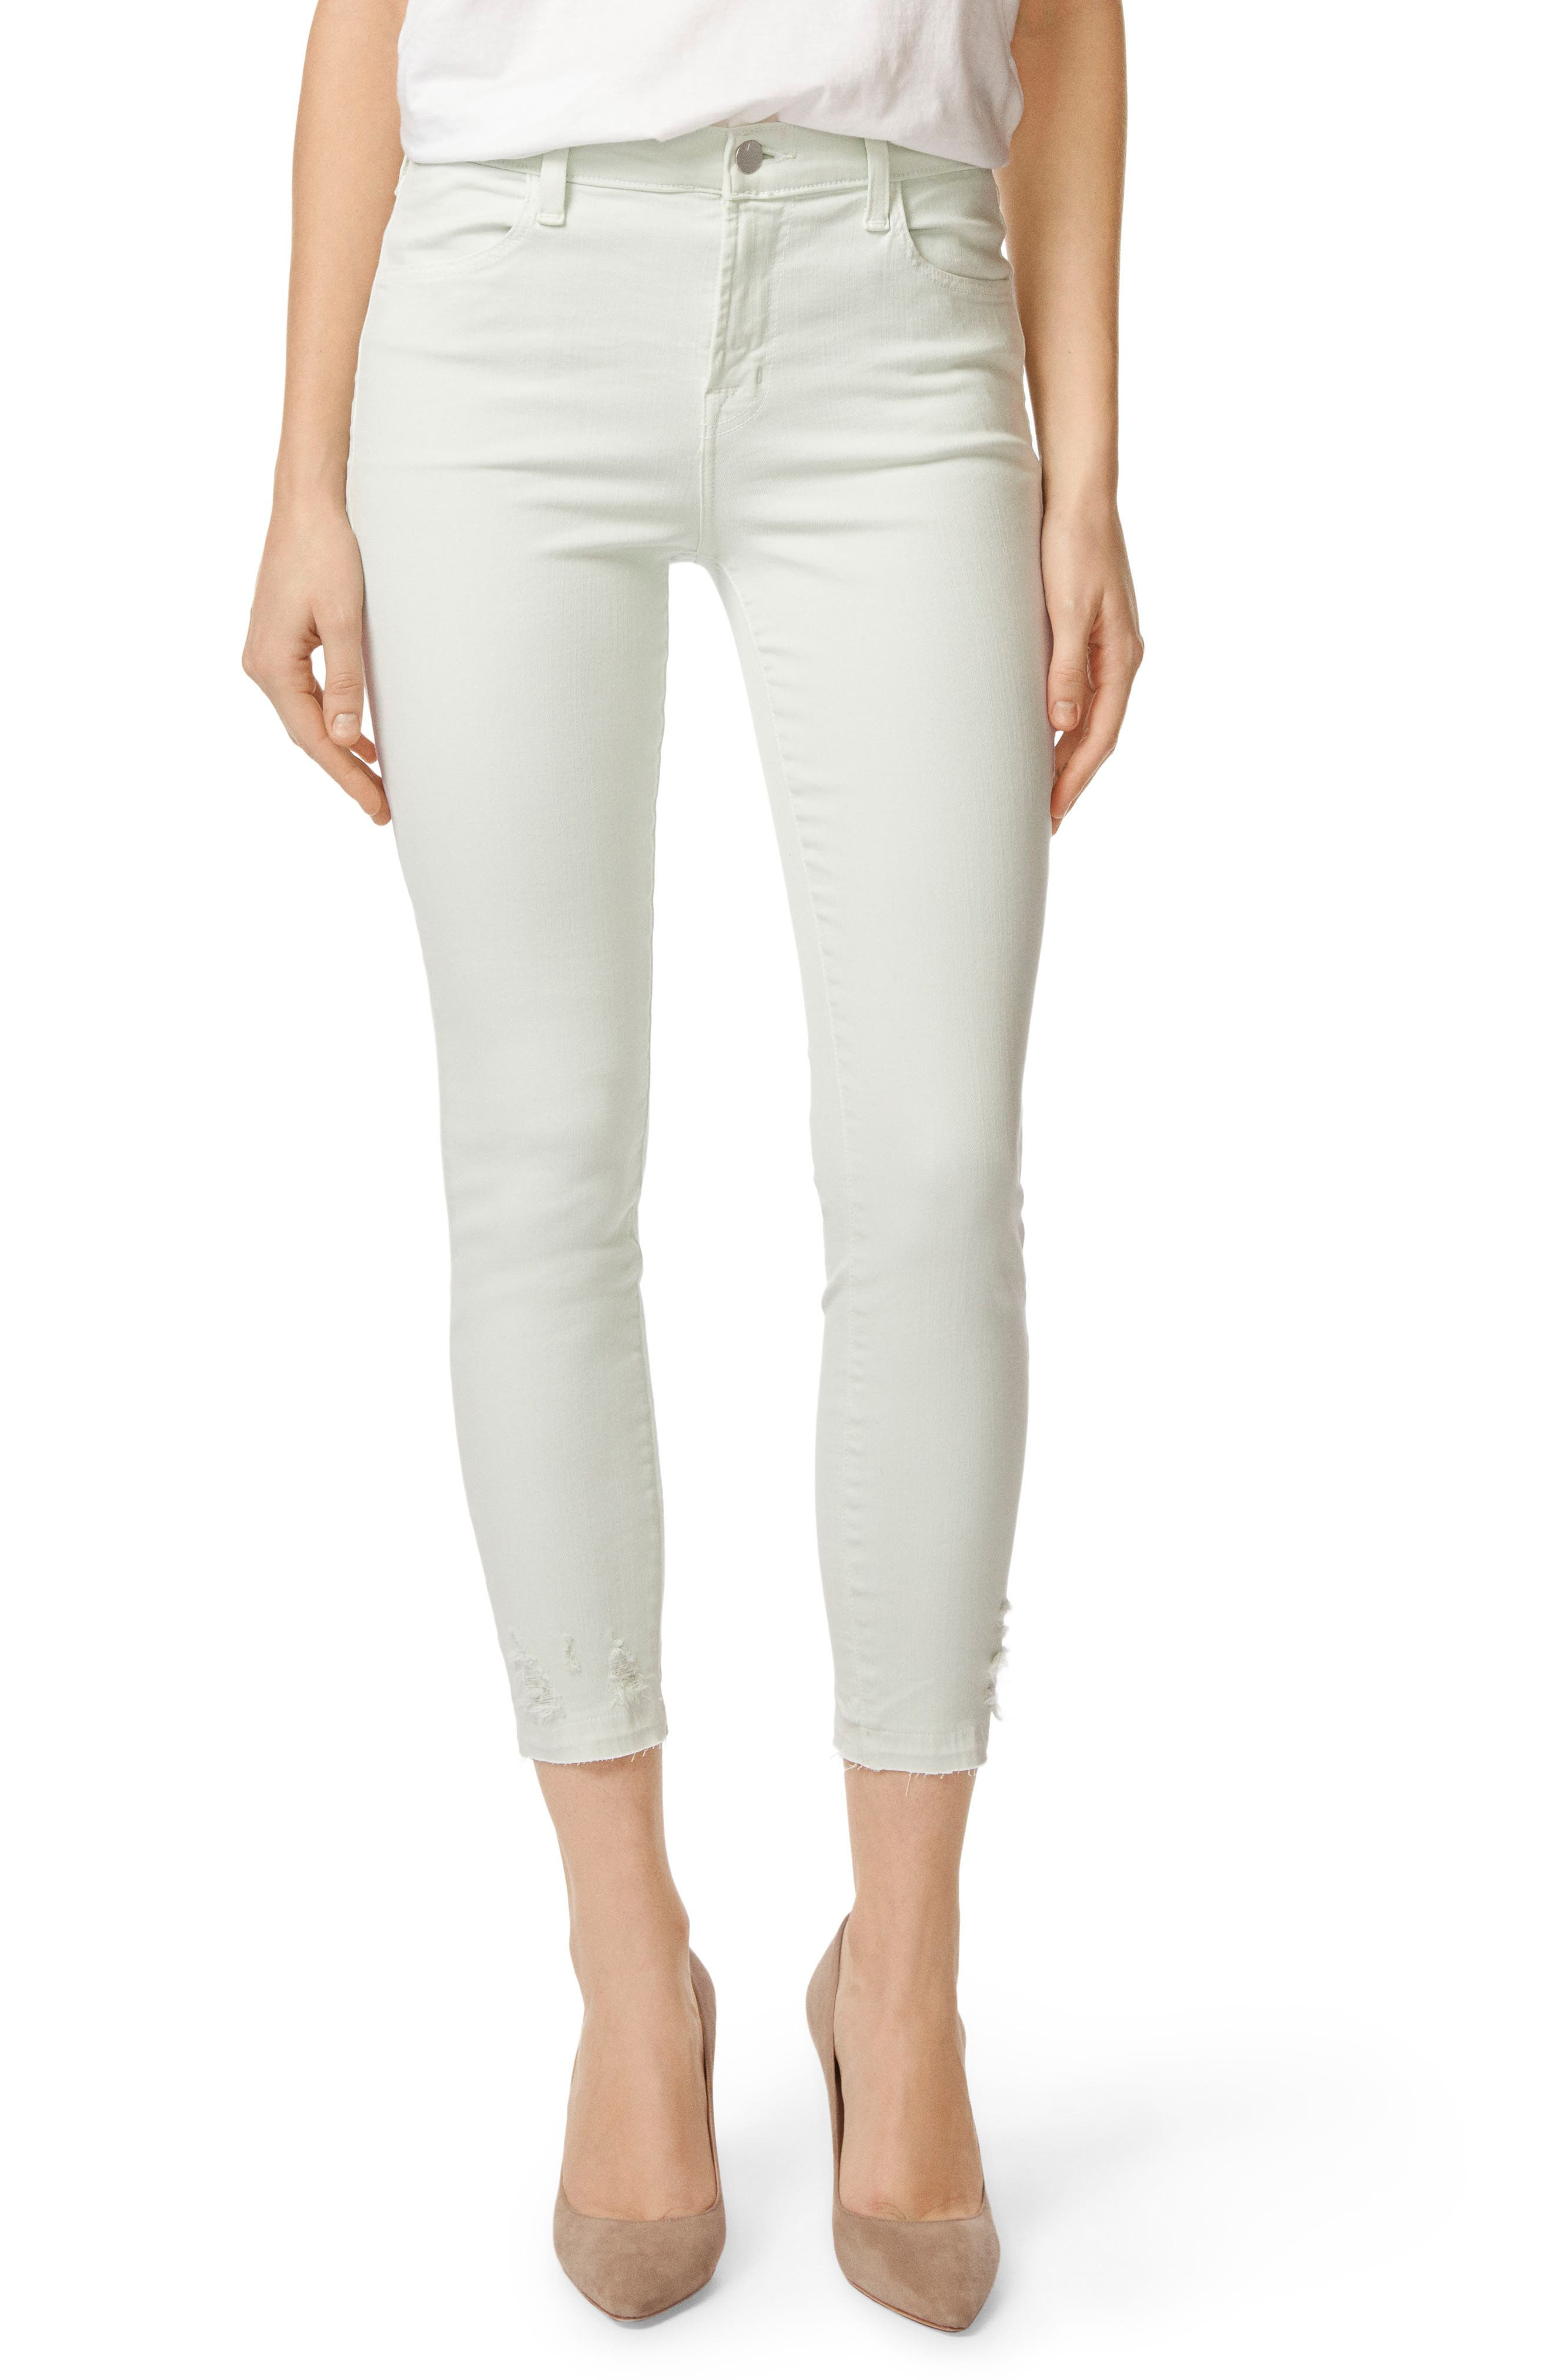 'Alana' High Rise Crop Skinny Jeans,                         Main,                         color, 336